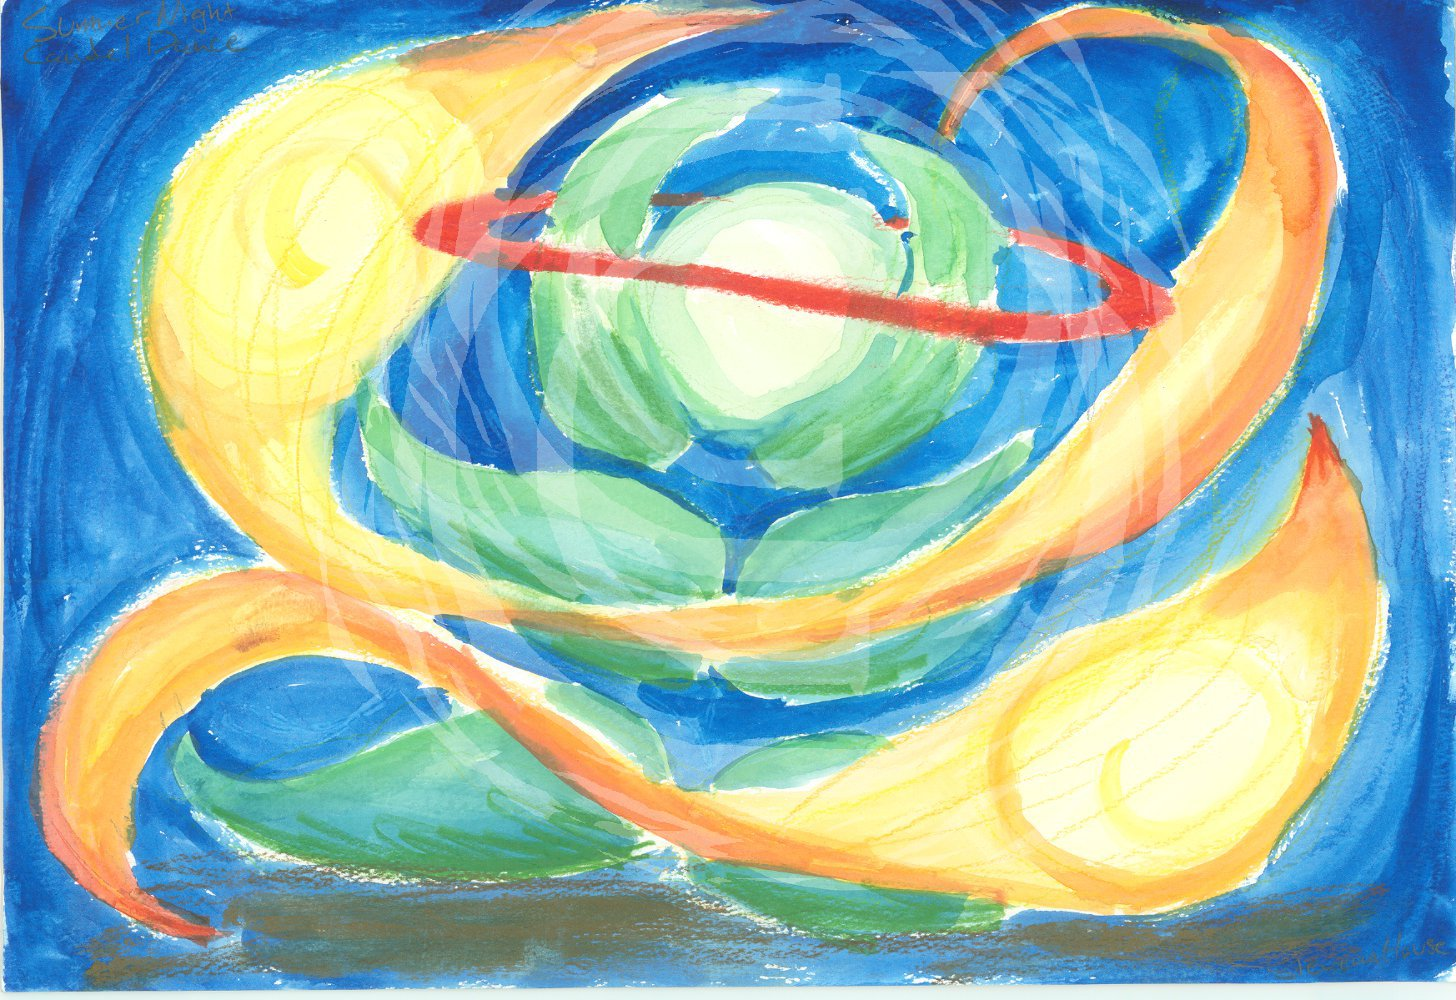 Tis piece shows two balls of flame floating around a green plant whose bud is haloed in red. Watercolor